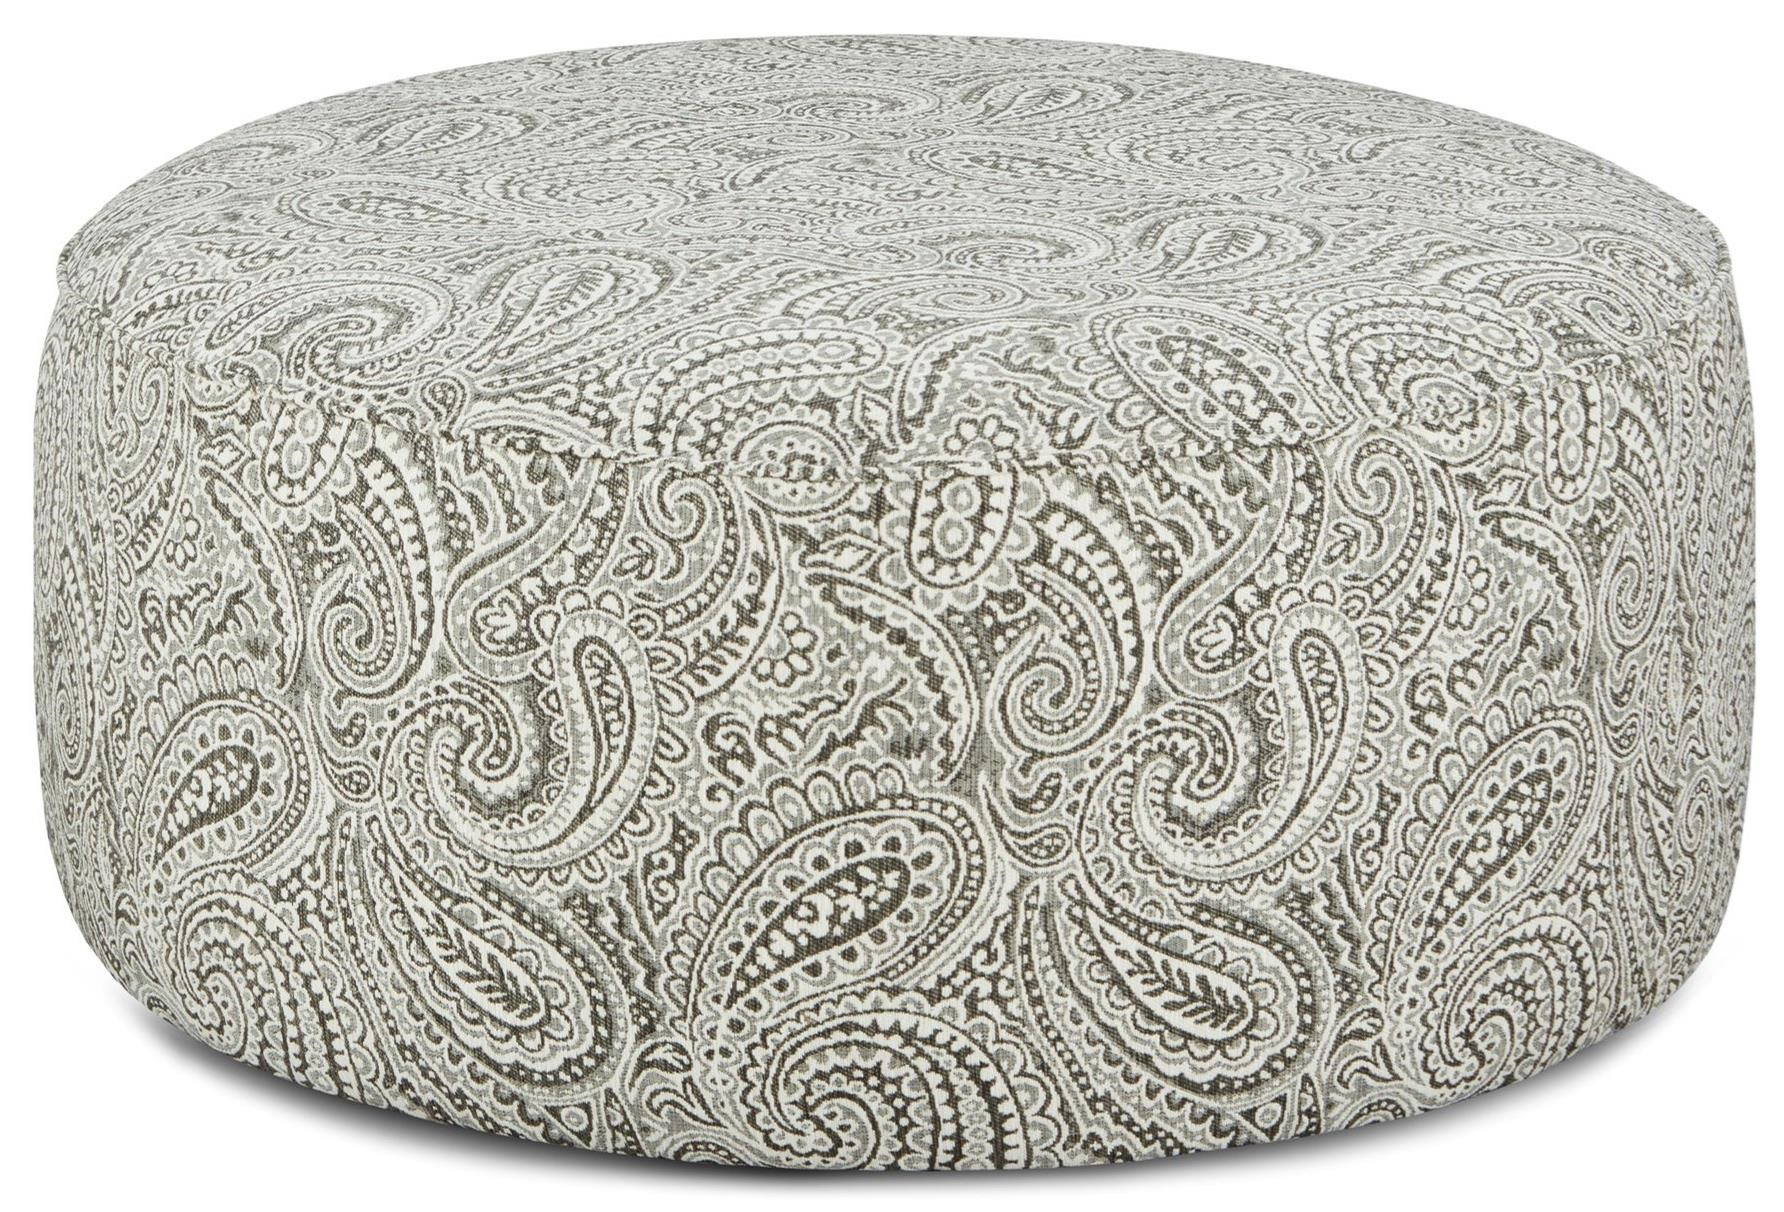 140 Cocktail Ottoman by Fusion Furniture at Darvin Furniture